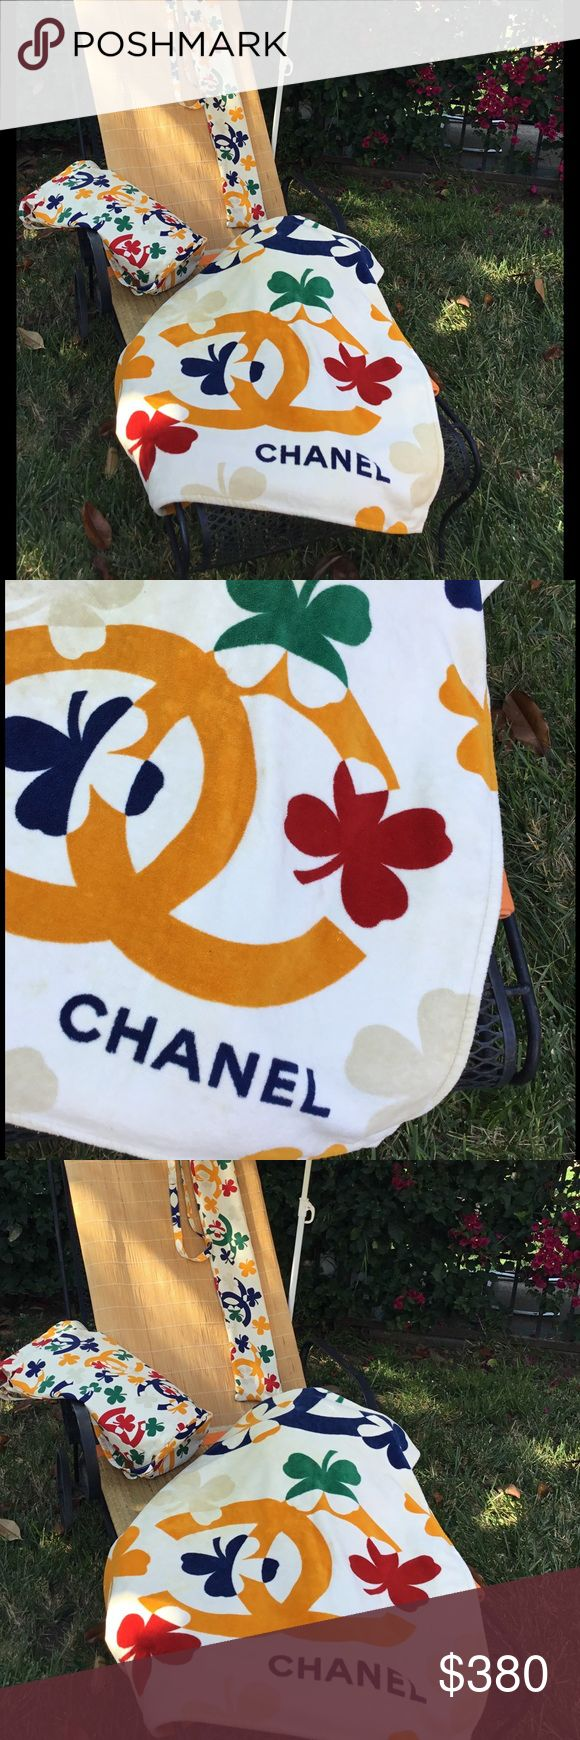 Authentic Chanel Beach Towel Chanel Multicolored Terry Cloth Clover Print Beach Towel and Matching Bag. CHANEL Accessories